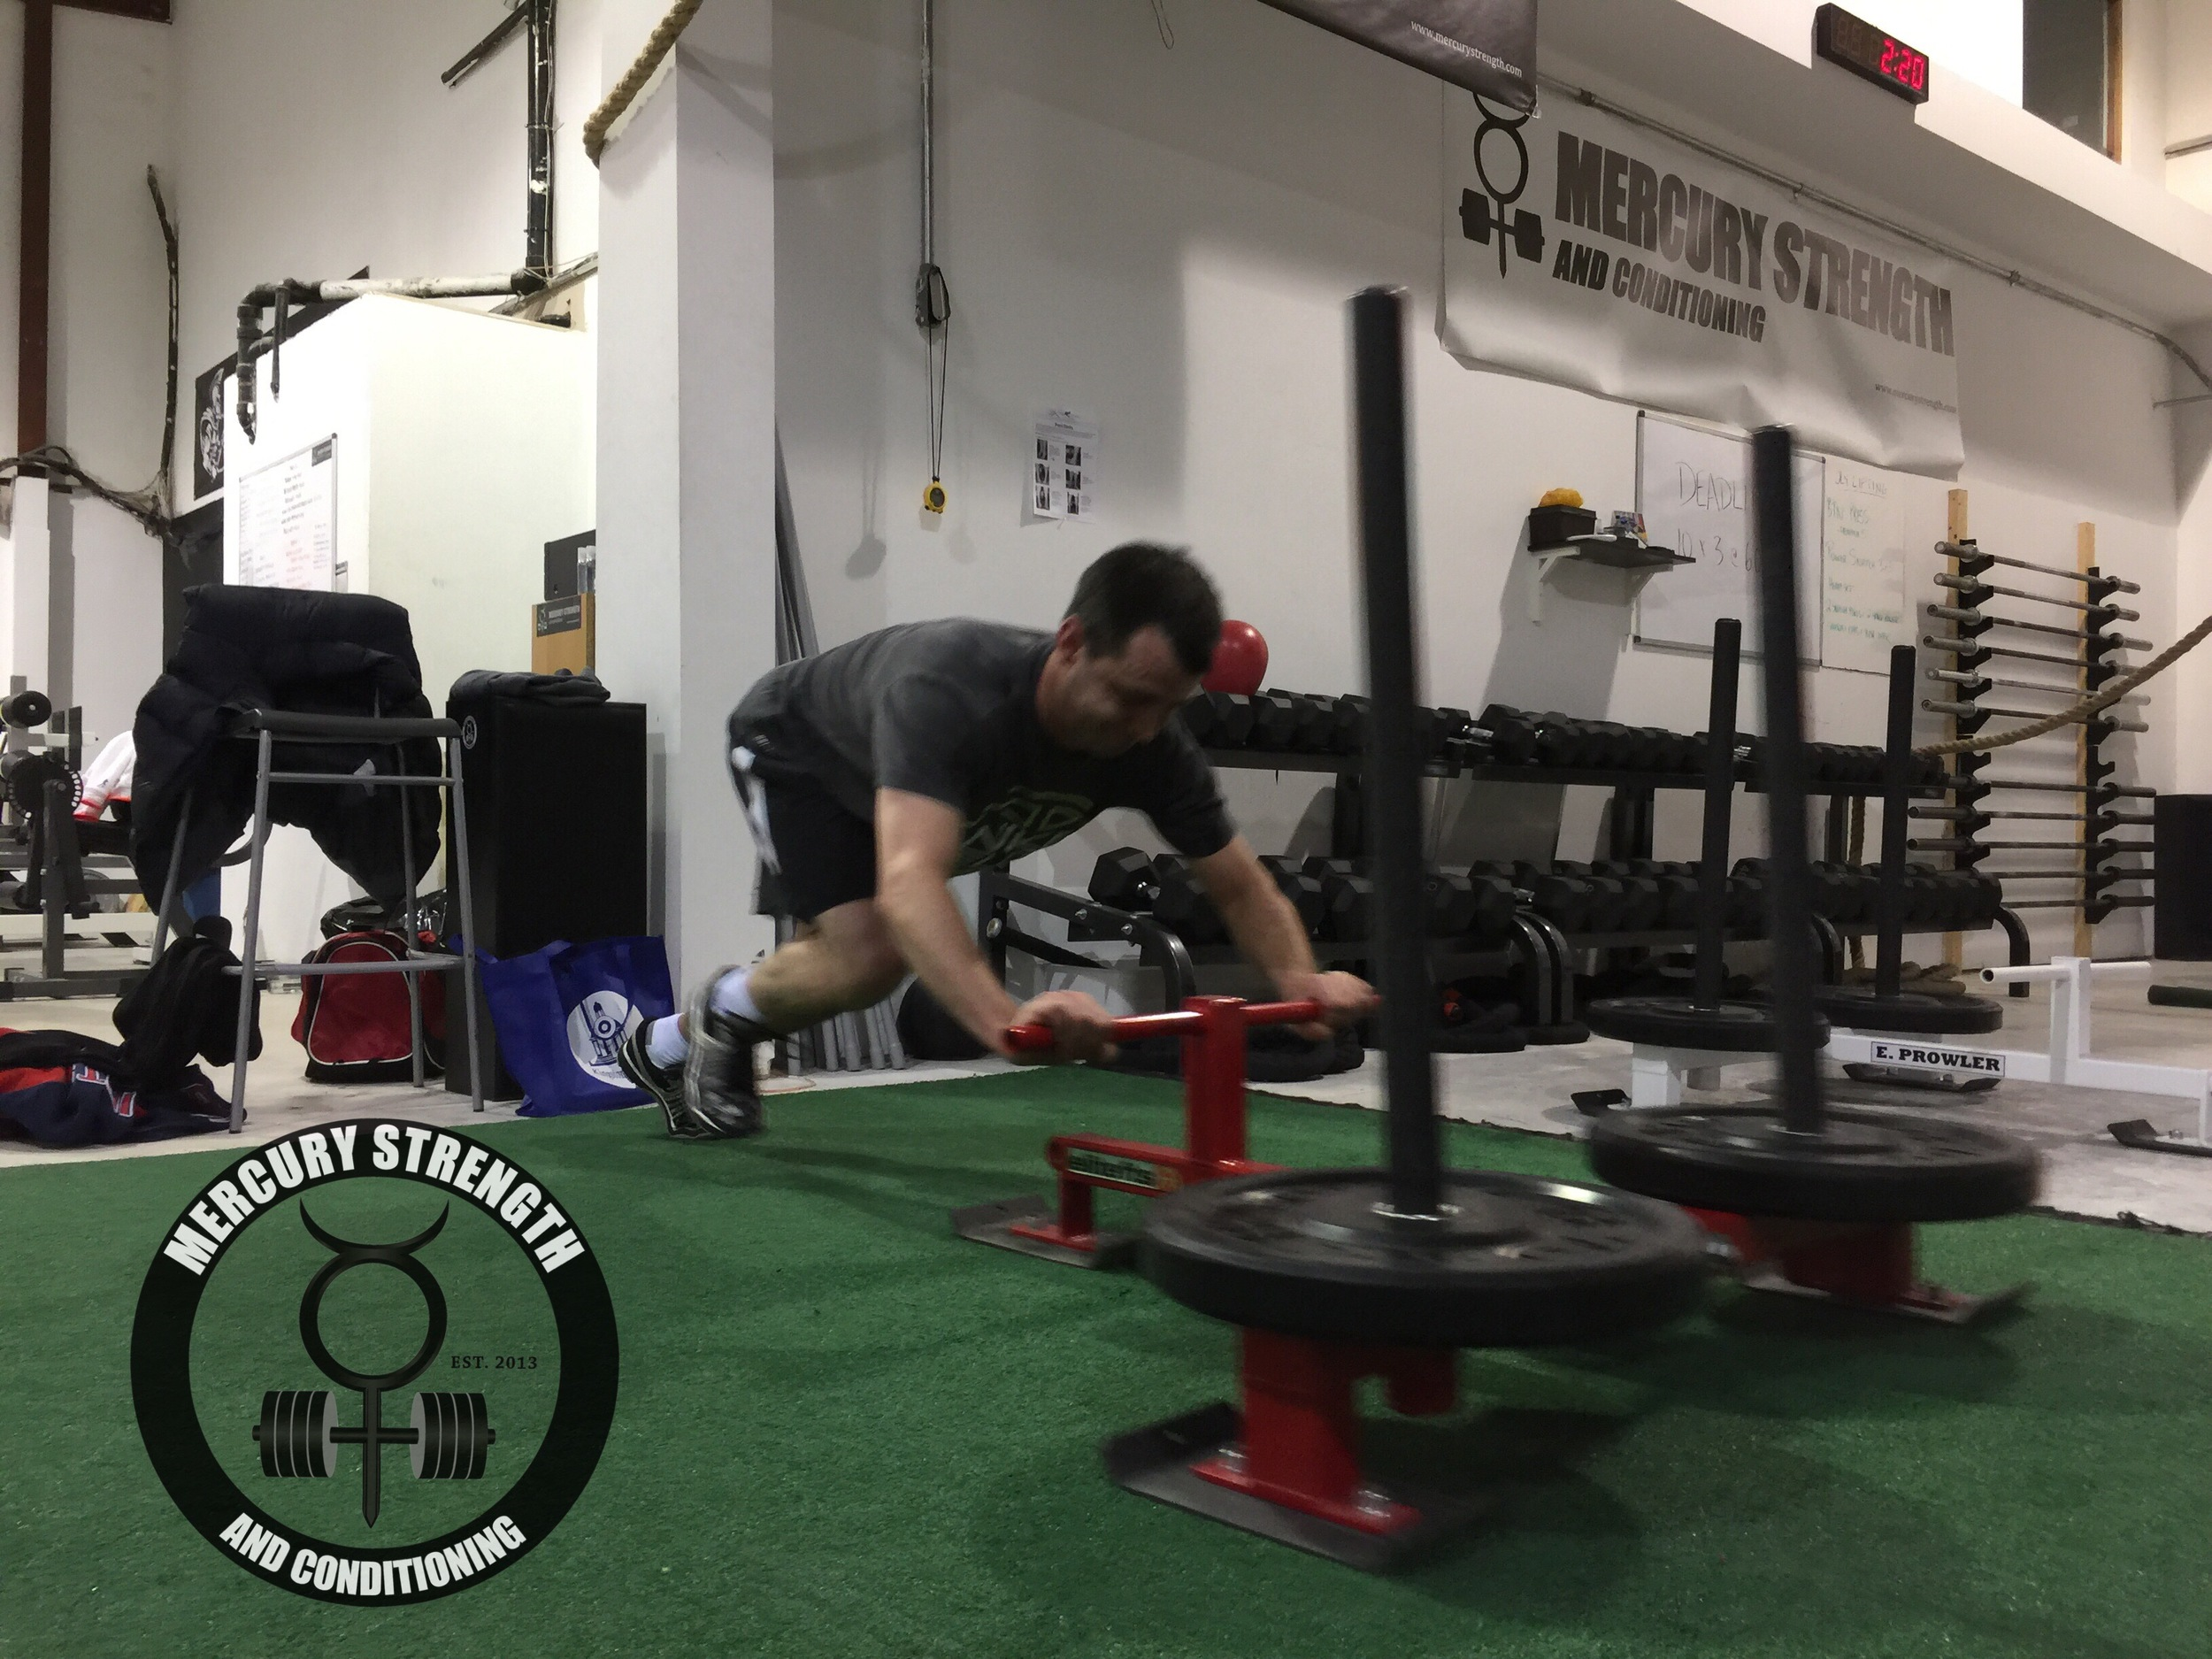 Nick pushing the prowler back to the starting line before some jumping lunges.